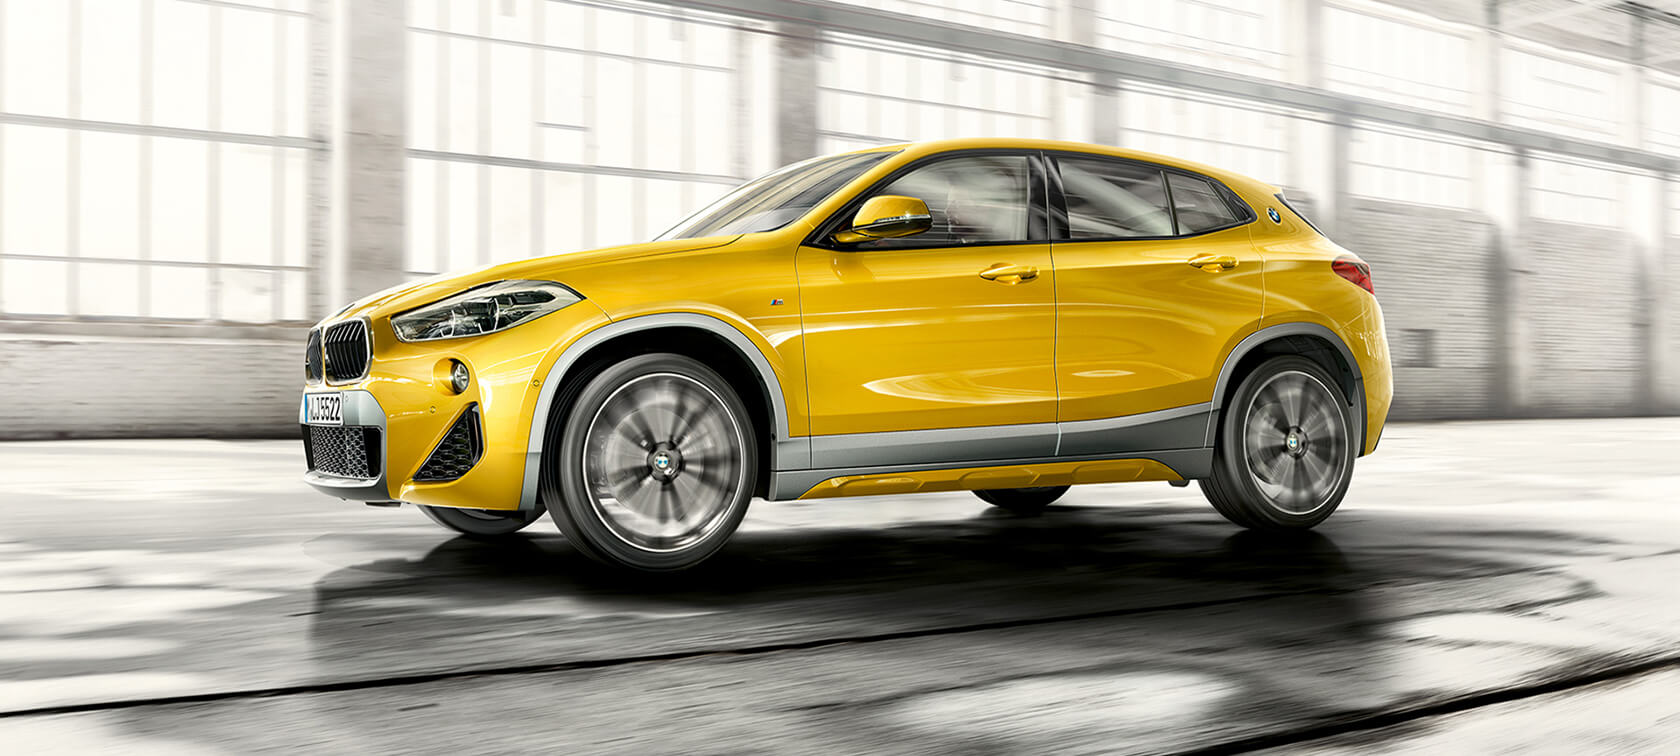 BMW X2 executive edition